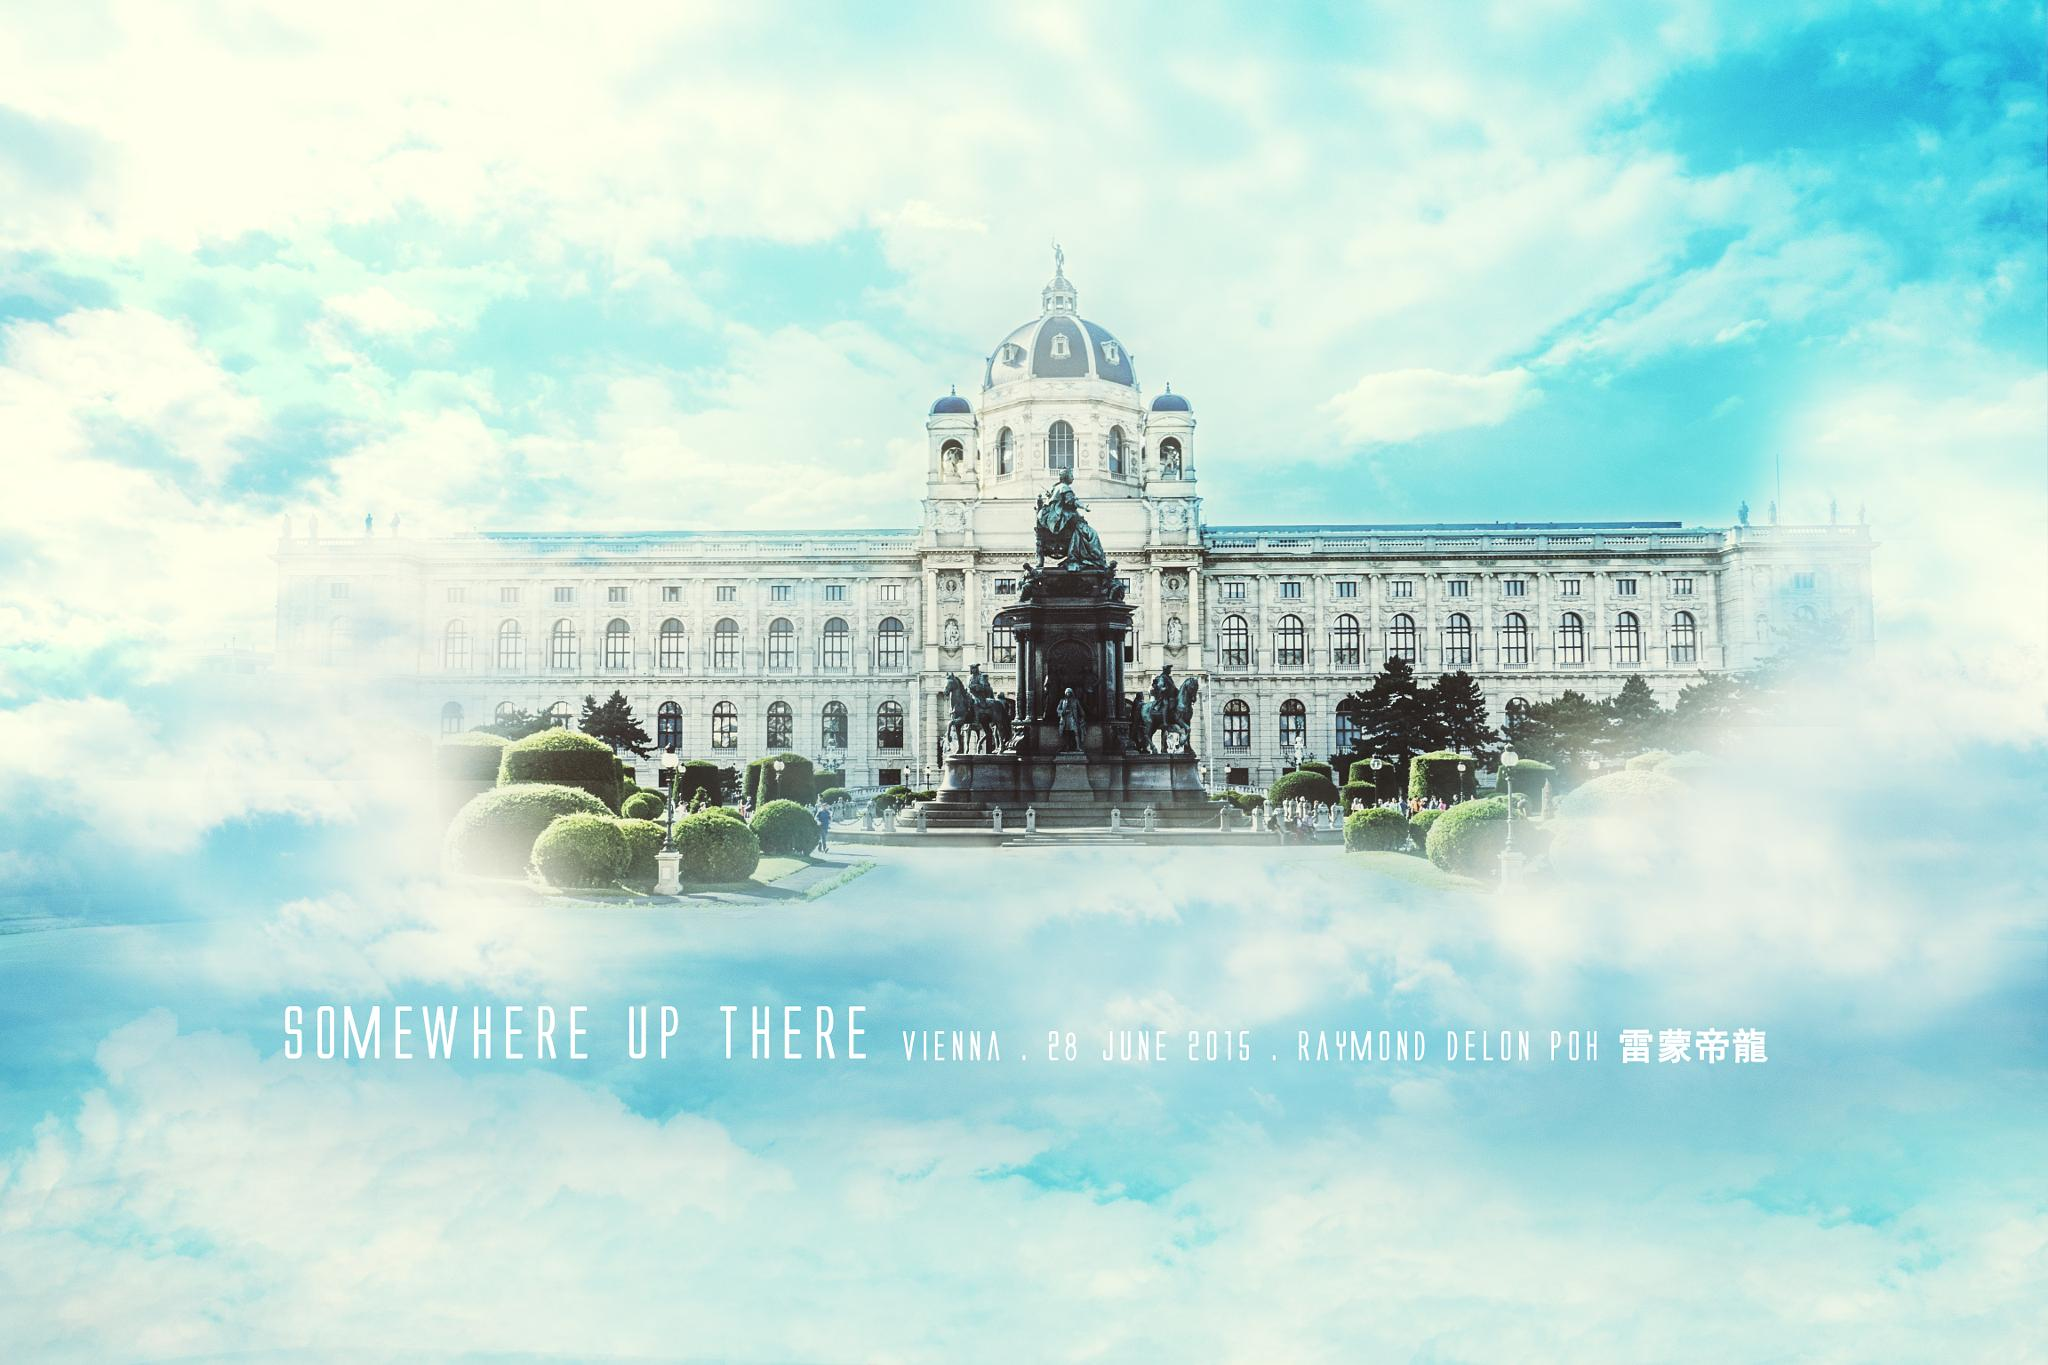 Somewhere Up There [Photo Manipulation] by Raymond Delon Poh